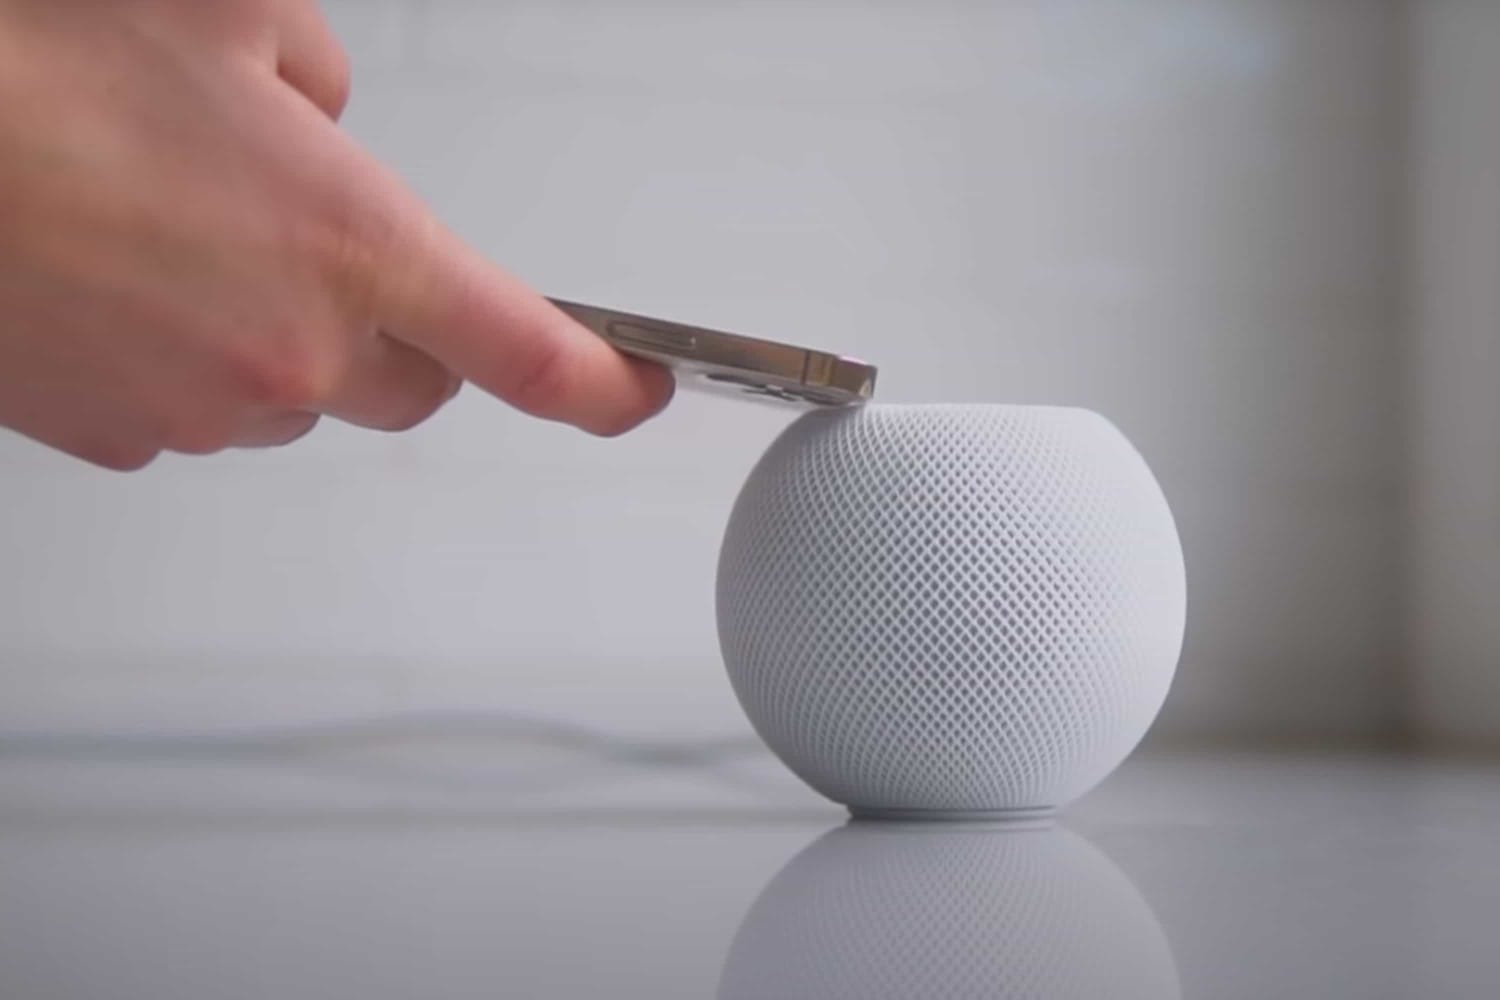 apple-homepod-mini-makes-big-trouble-for-owners-20201124-1